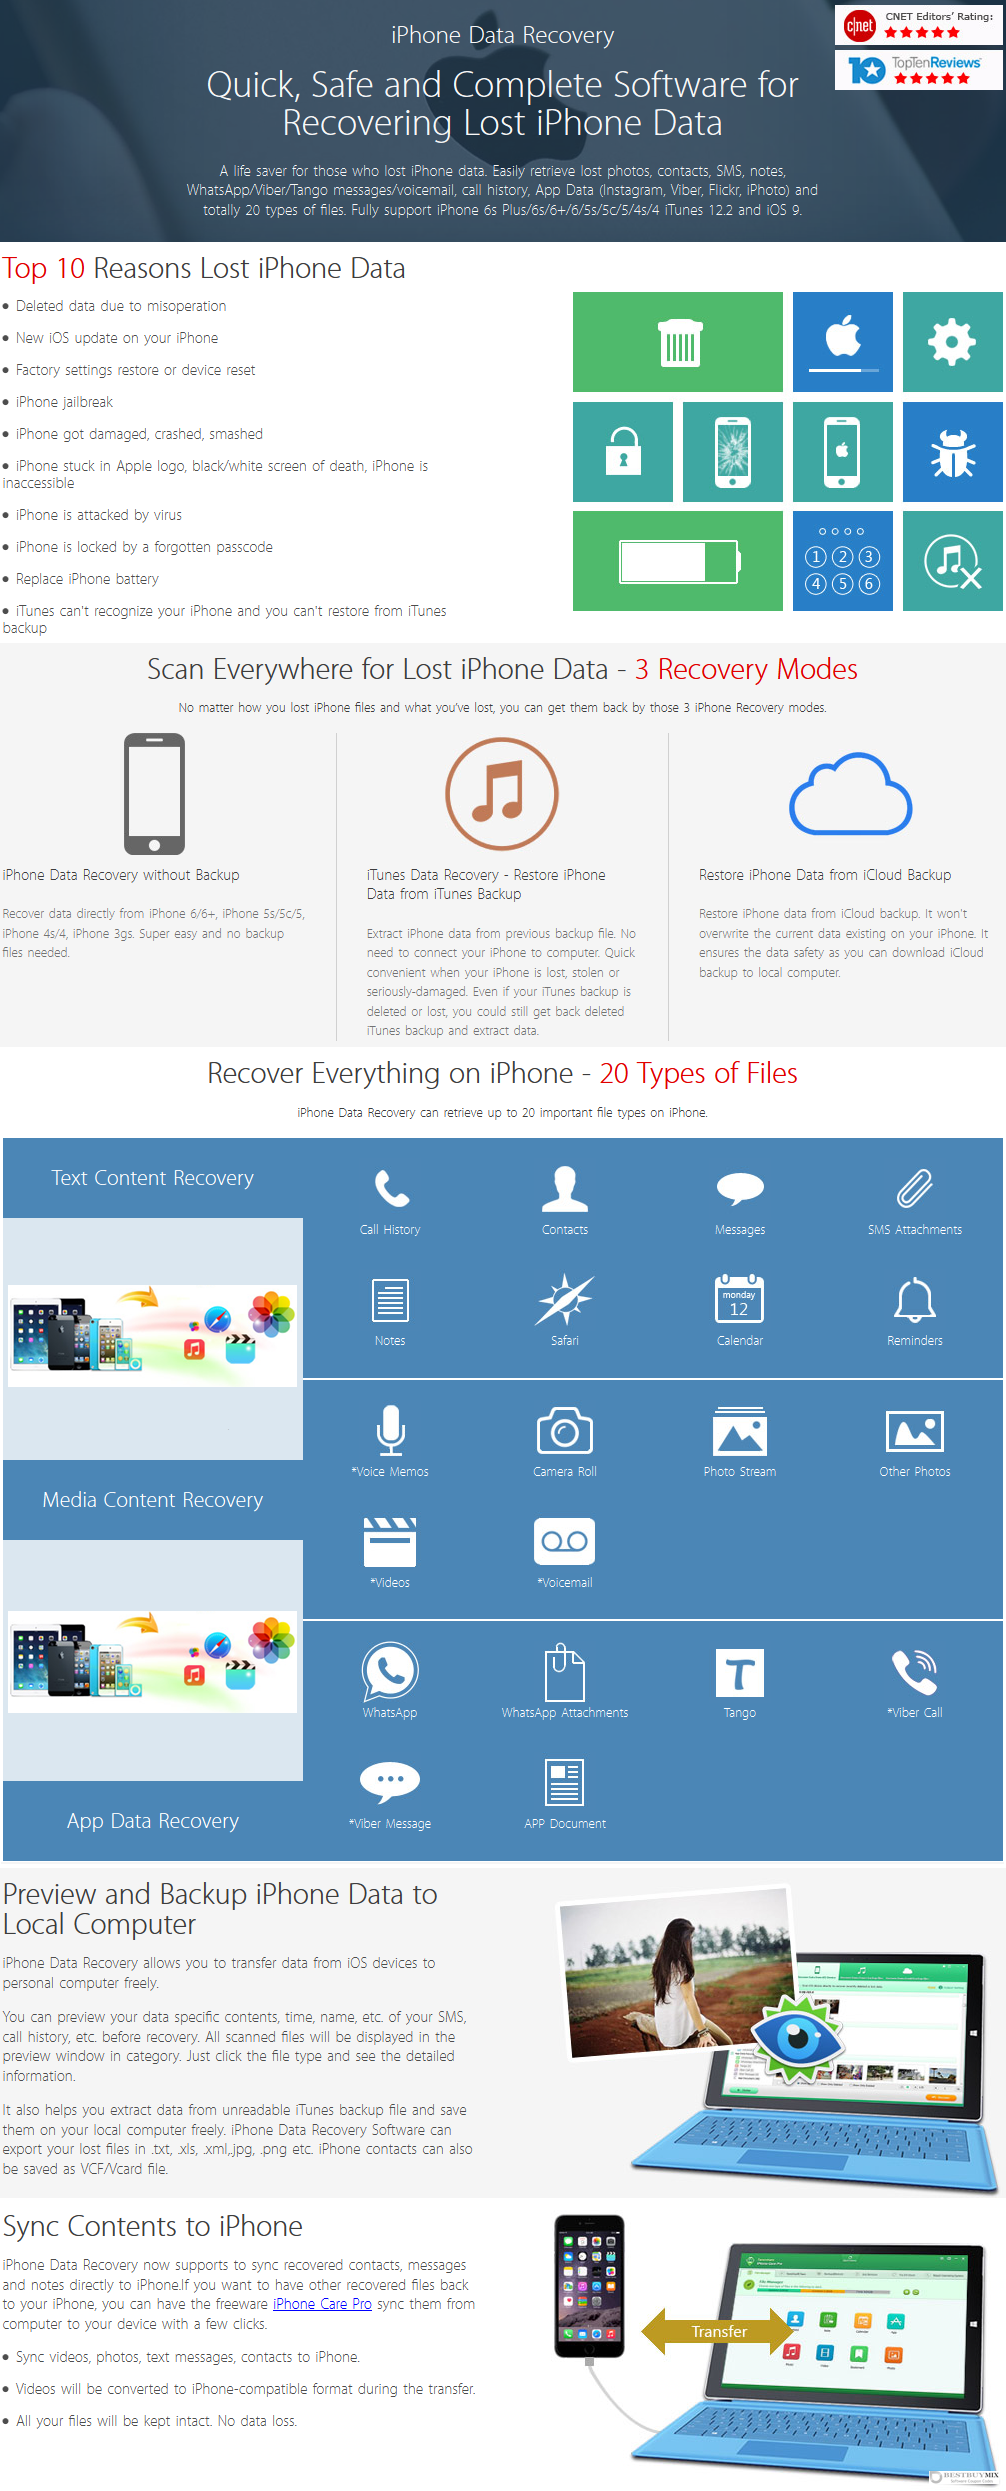 Tenorshare iPhone Data Recovery Discount Coupon Code